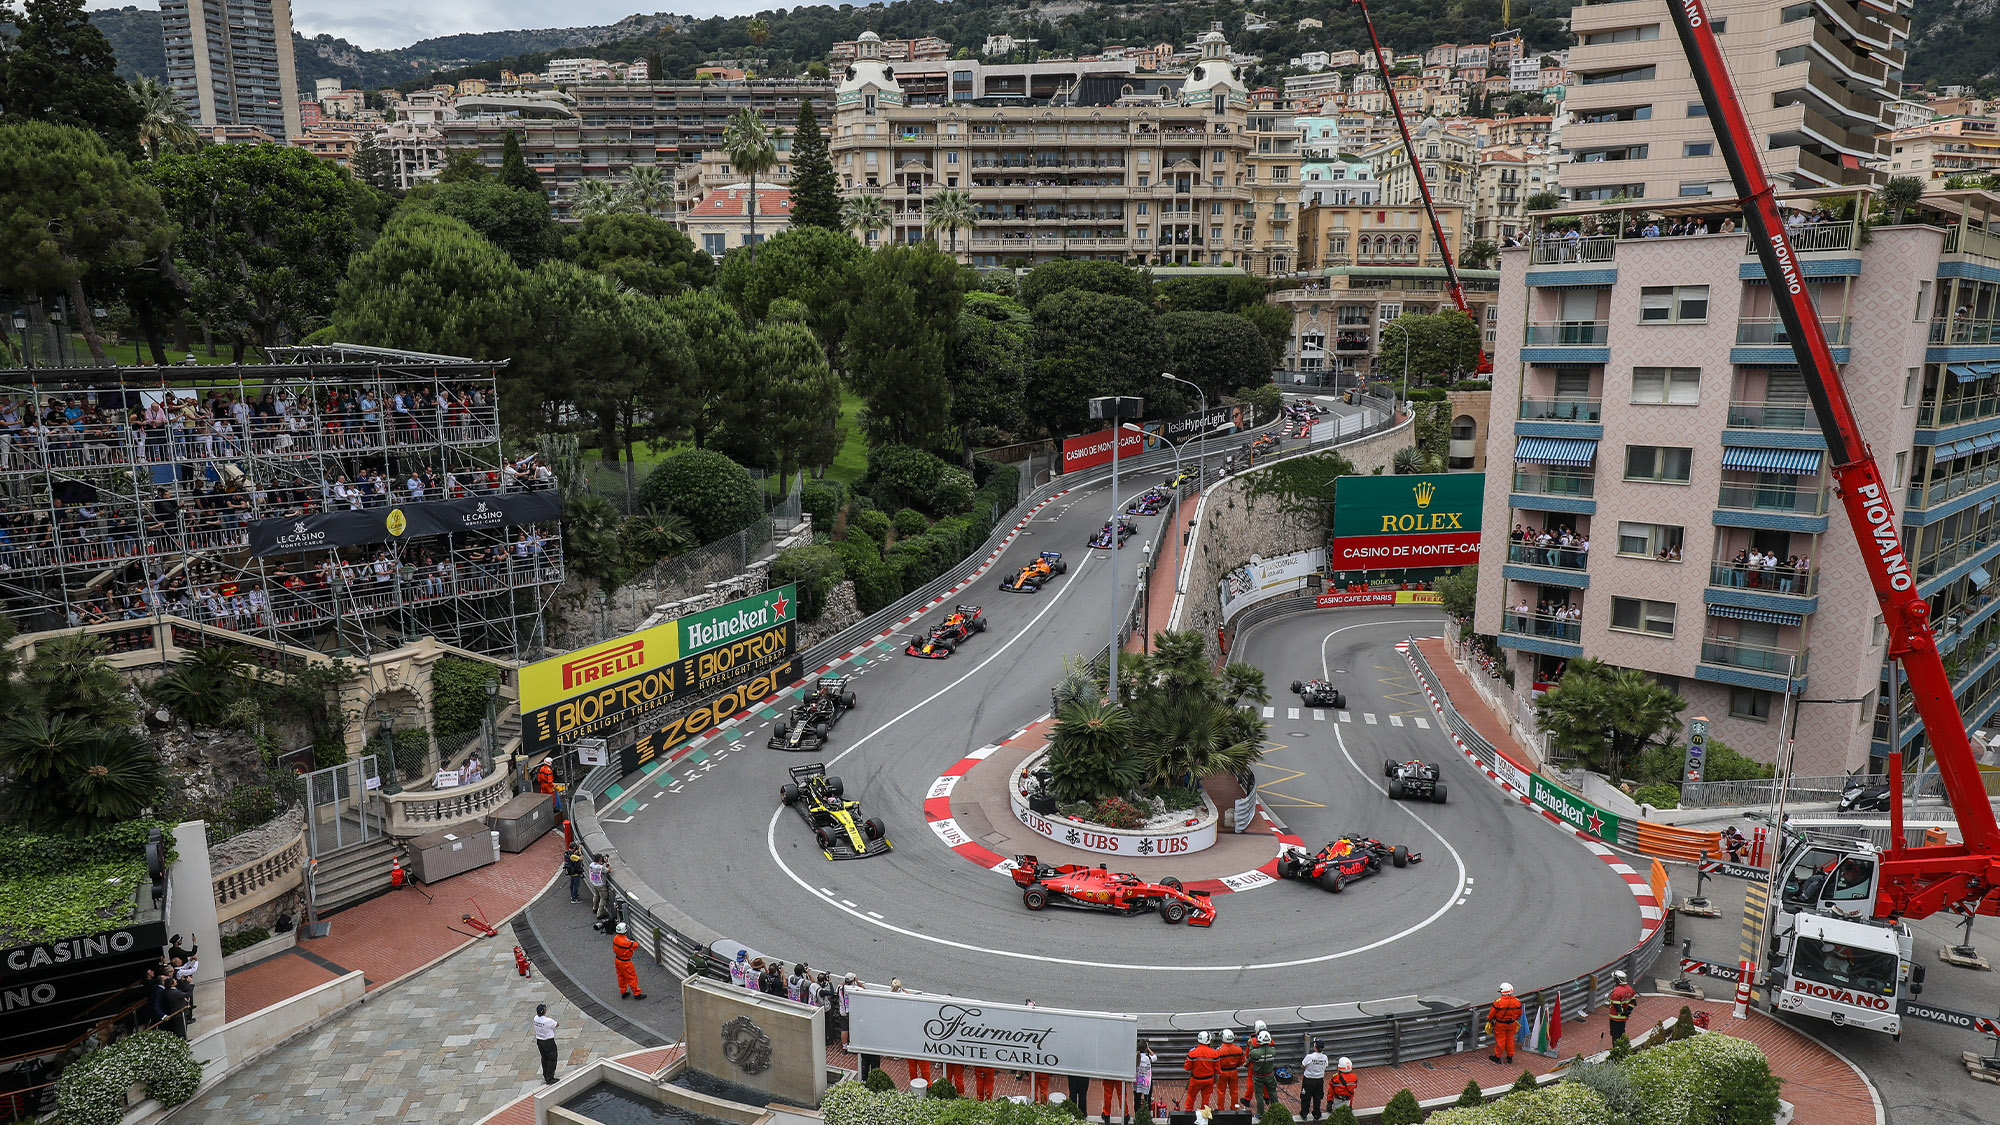 Monaco Grand Prix cancellation rumours are false, say organisers